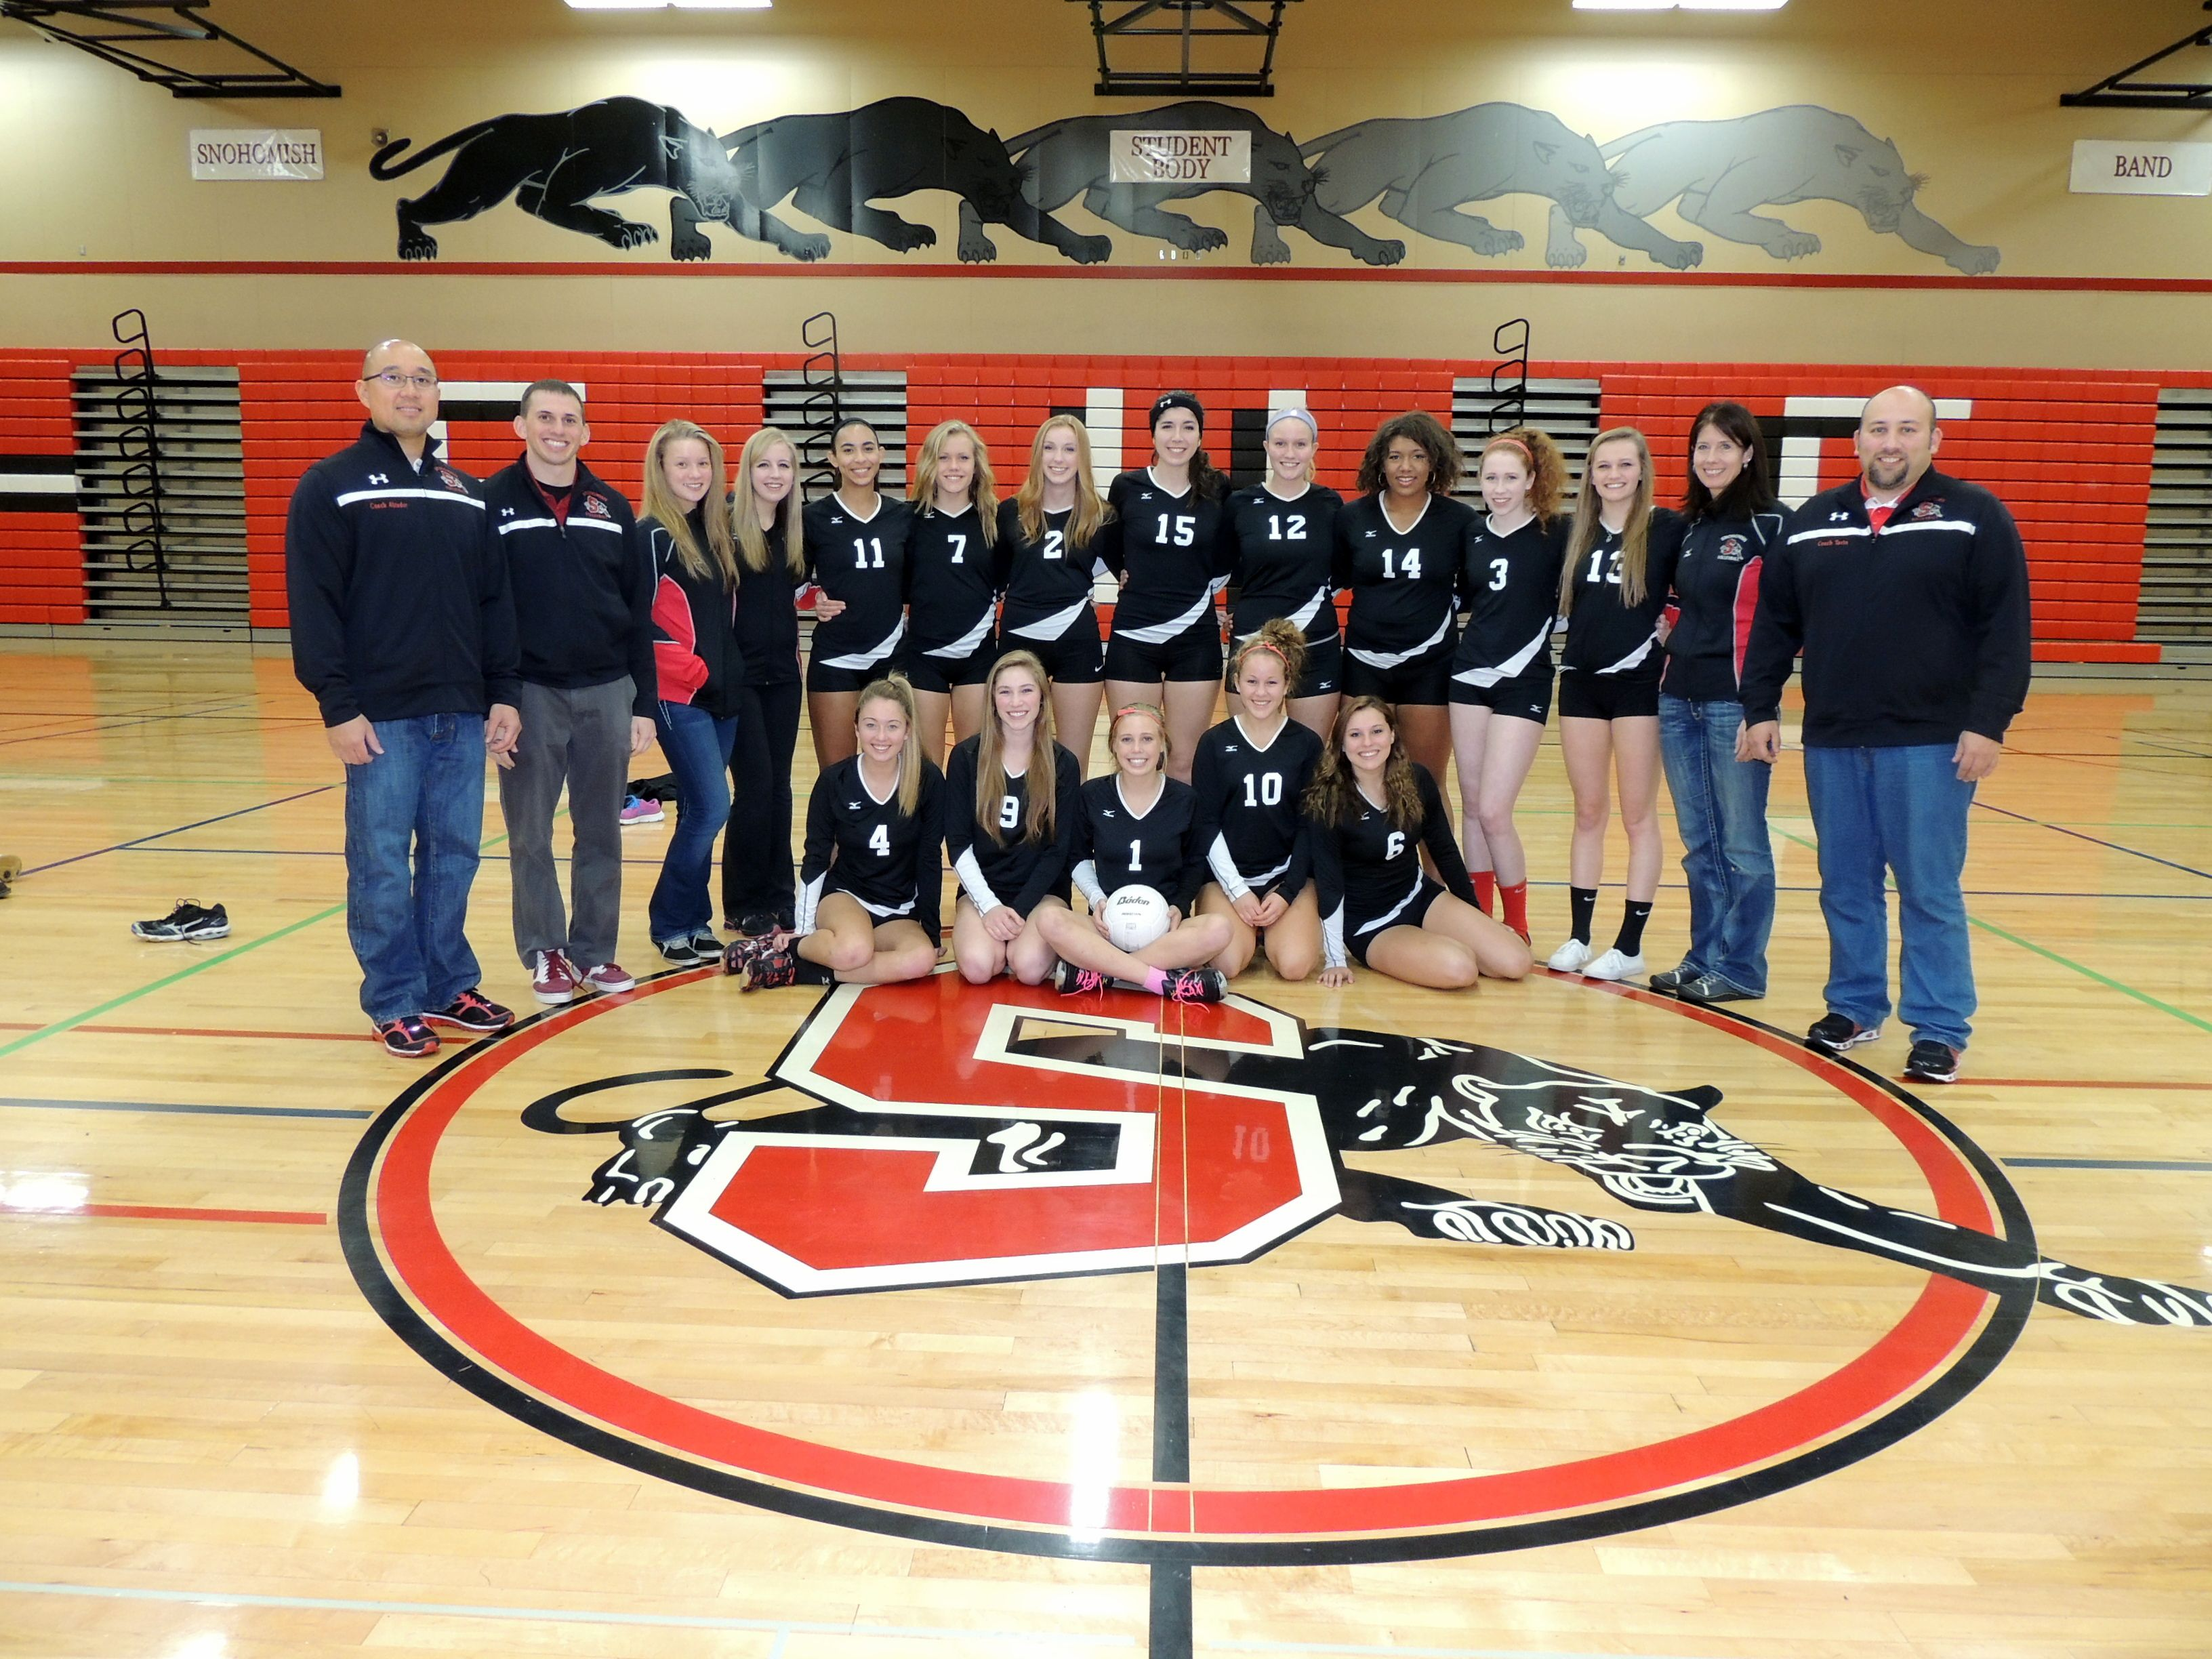 Snohomish Panthers Photo For State Volleyball Competition 2013 Volleyball Oregon State University Writing Majors